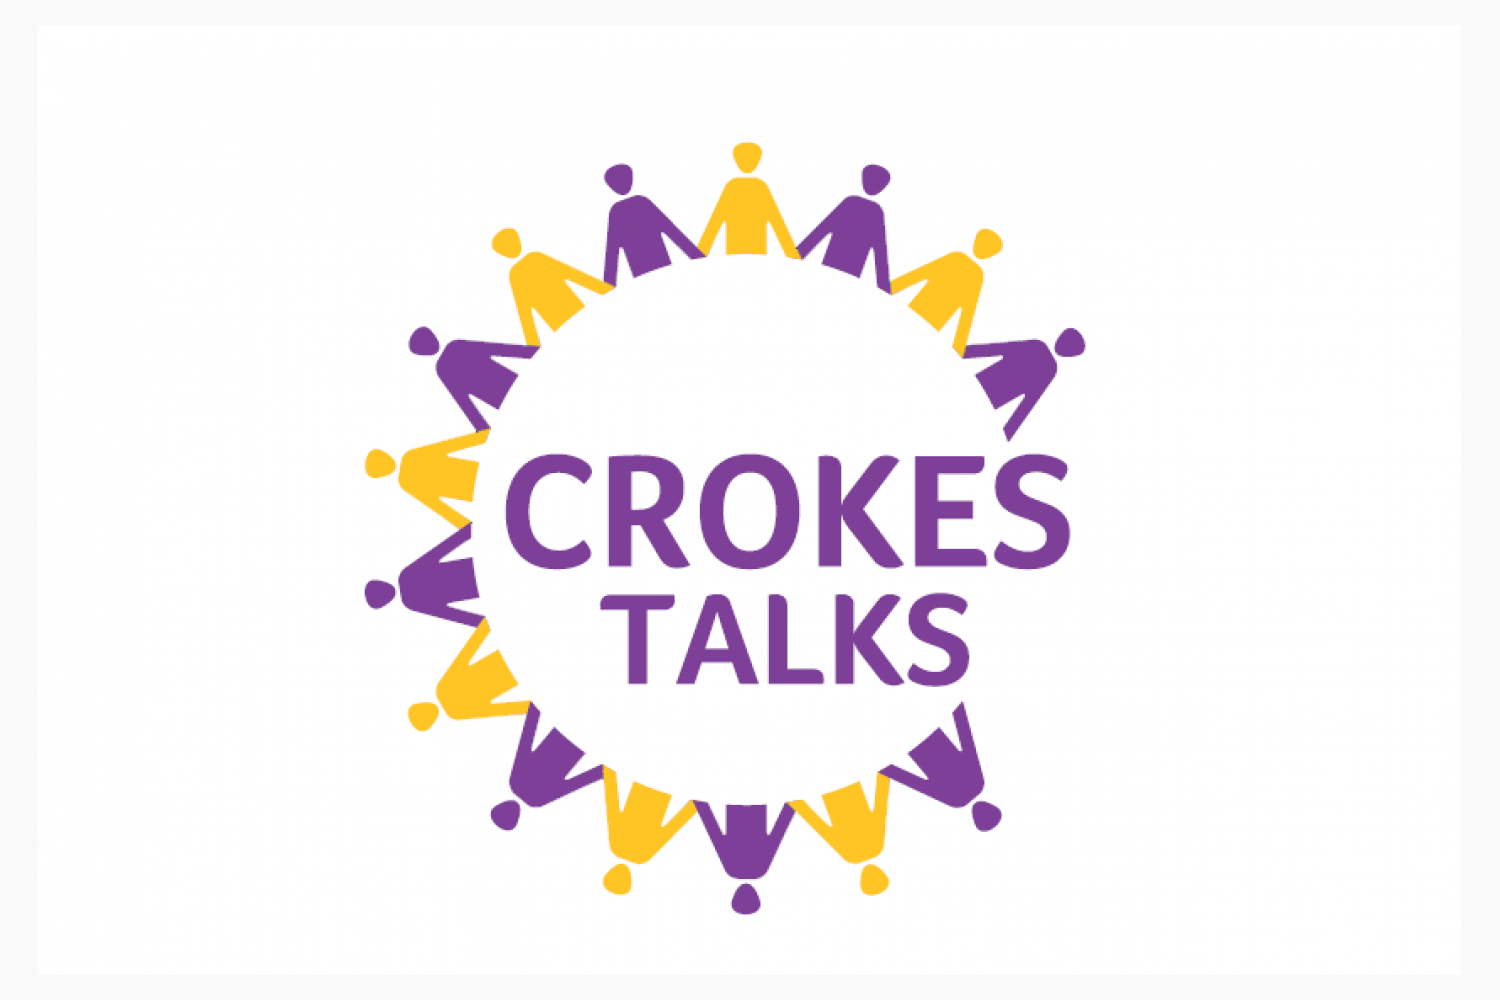 Crokes REcalls Wednesday May 24th in the Village cafe at 2:30pm